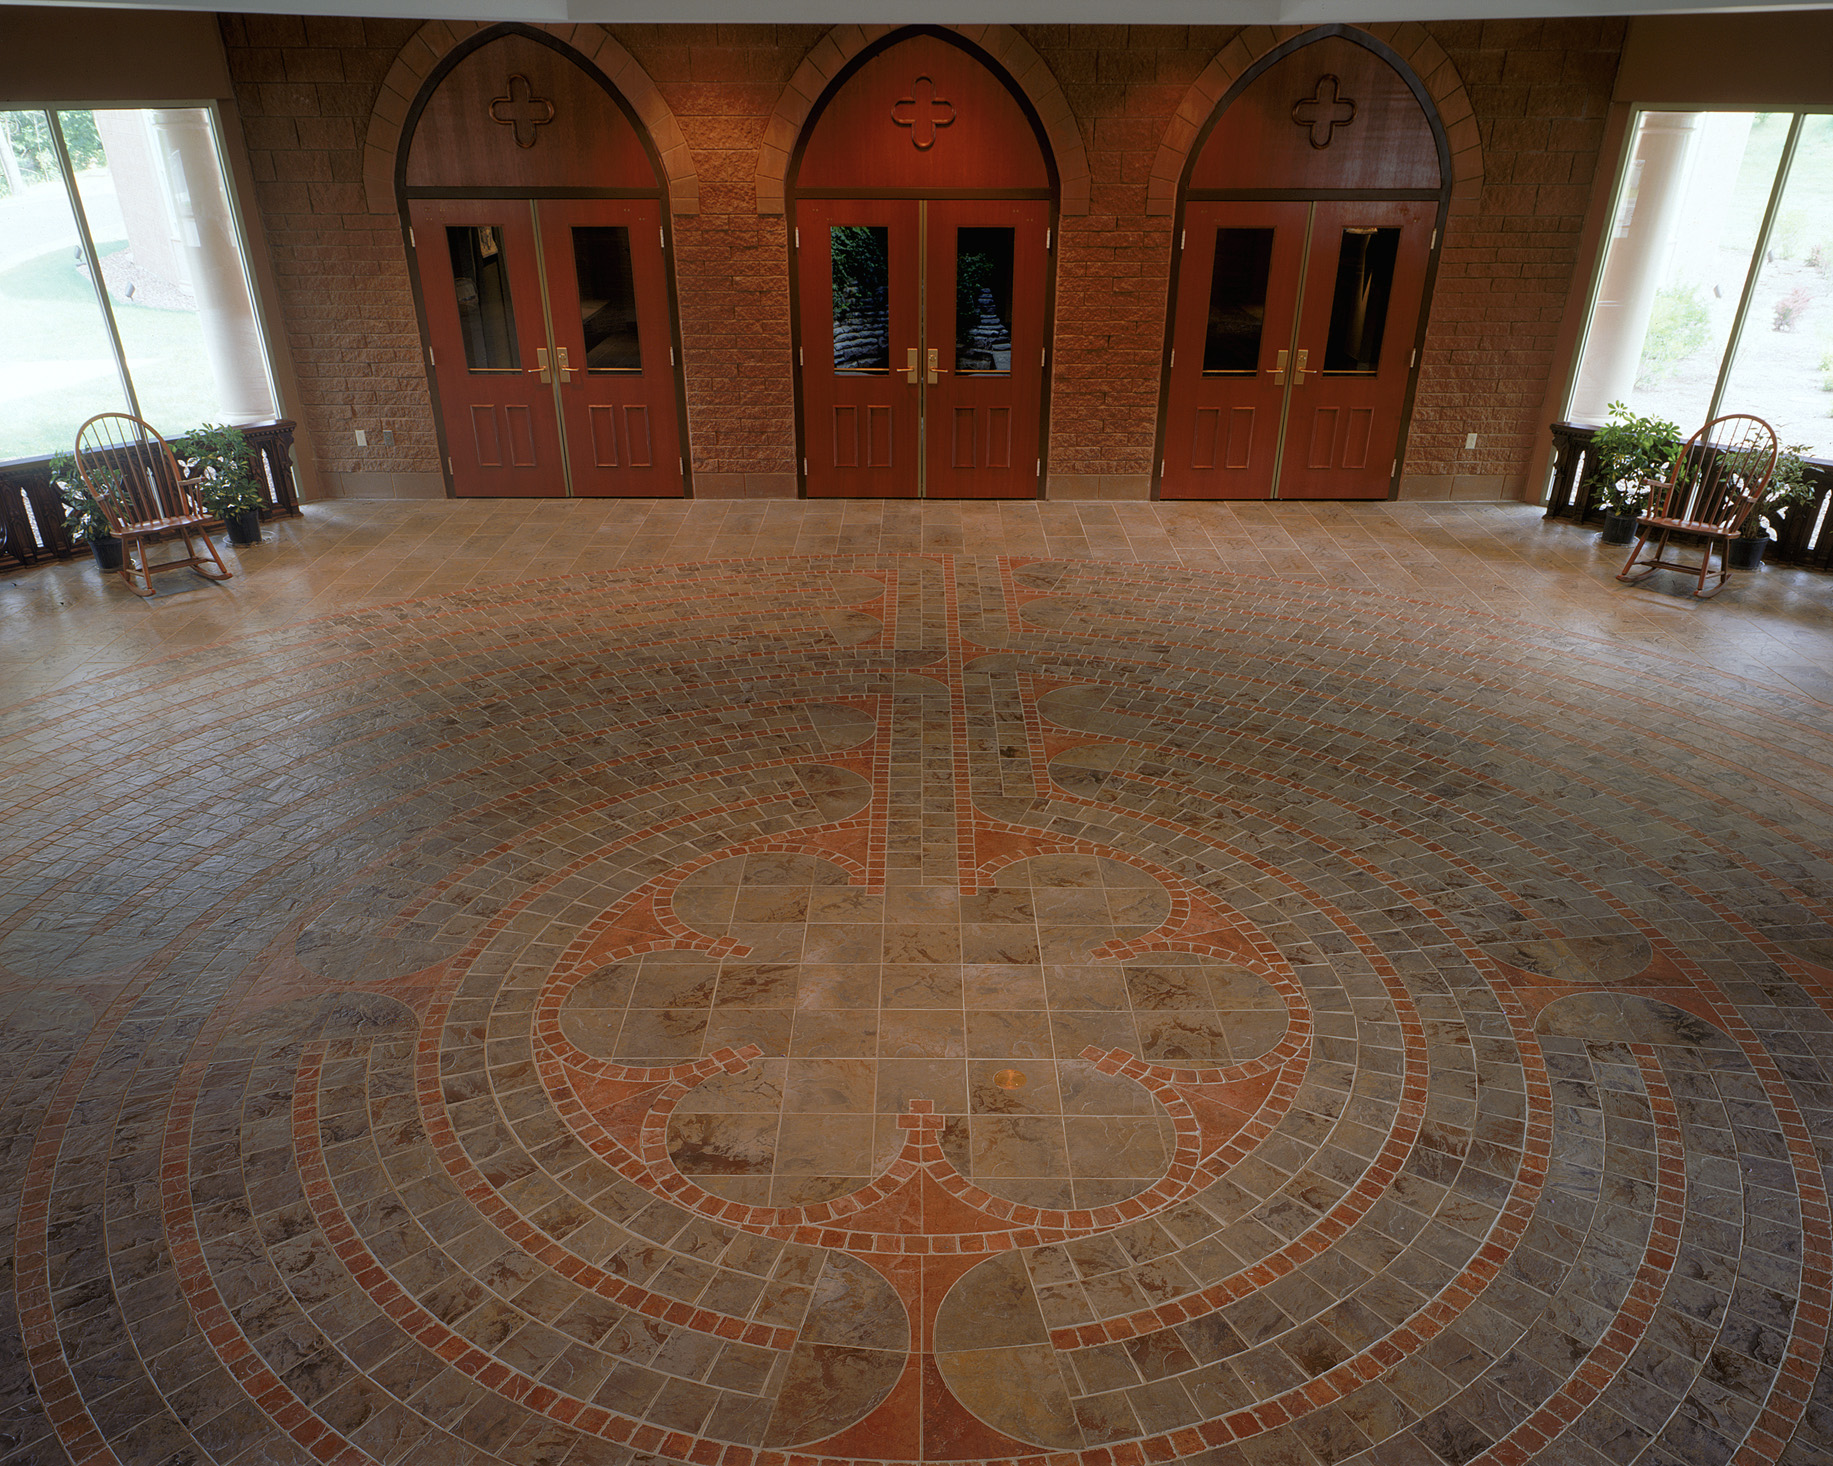 A labyrinth is incorporated into the narthex floor in subtle materials.